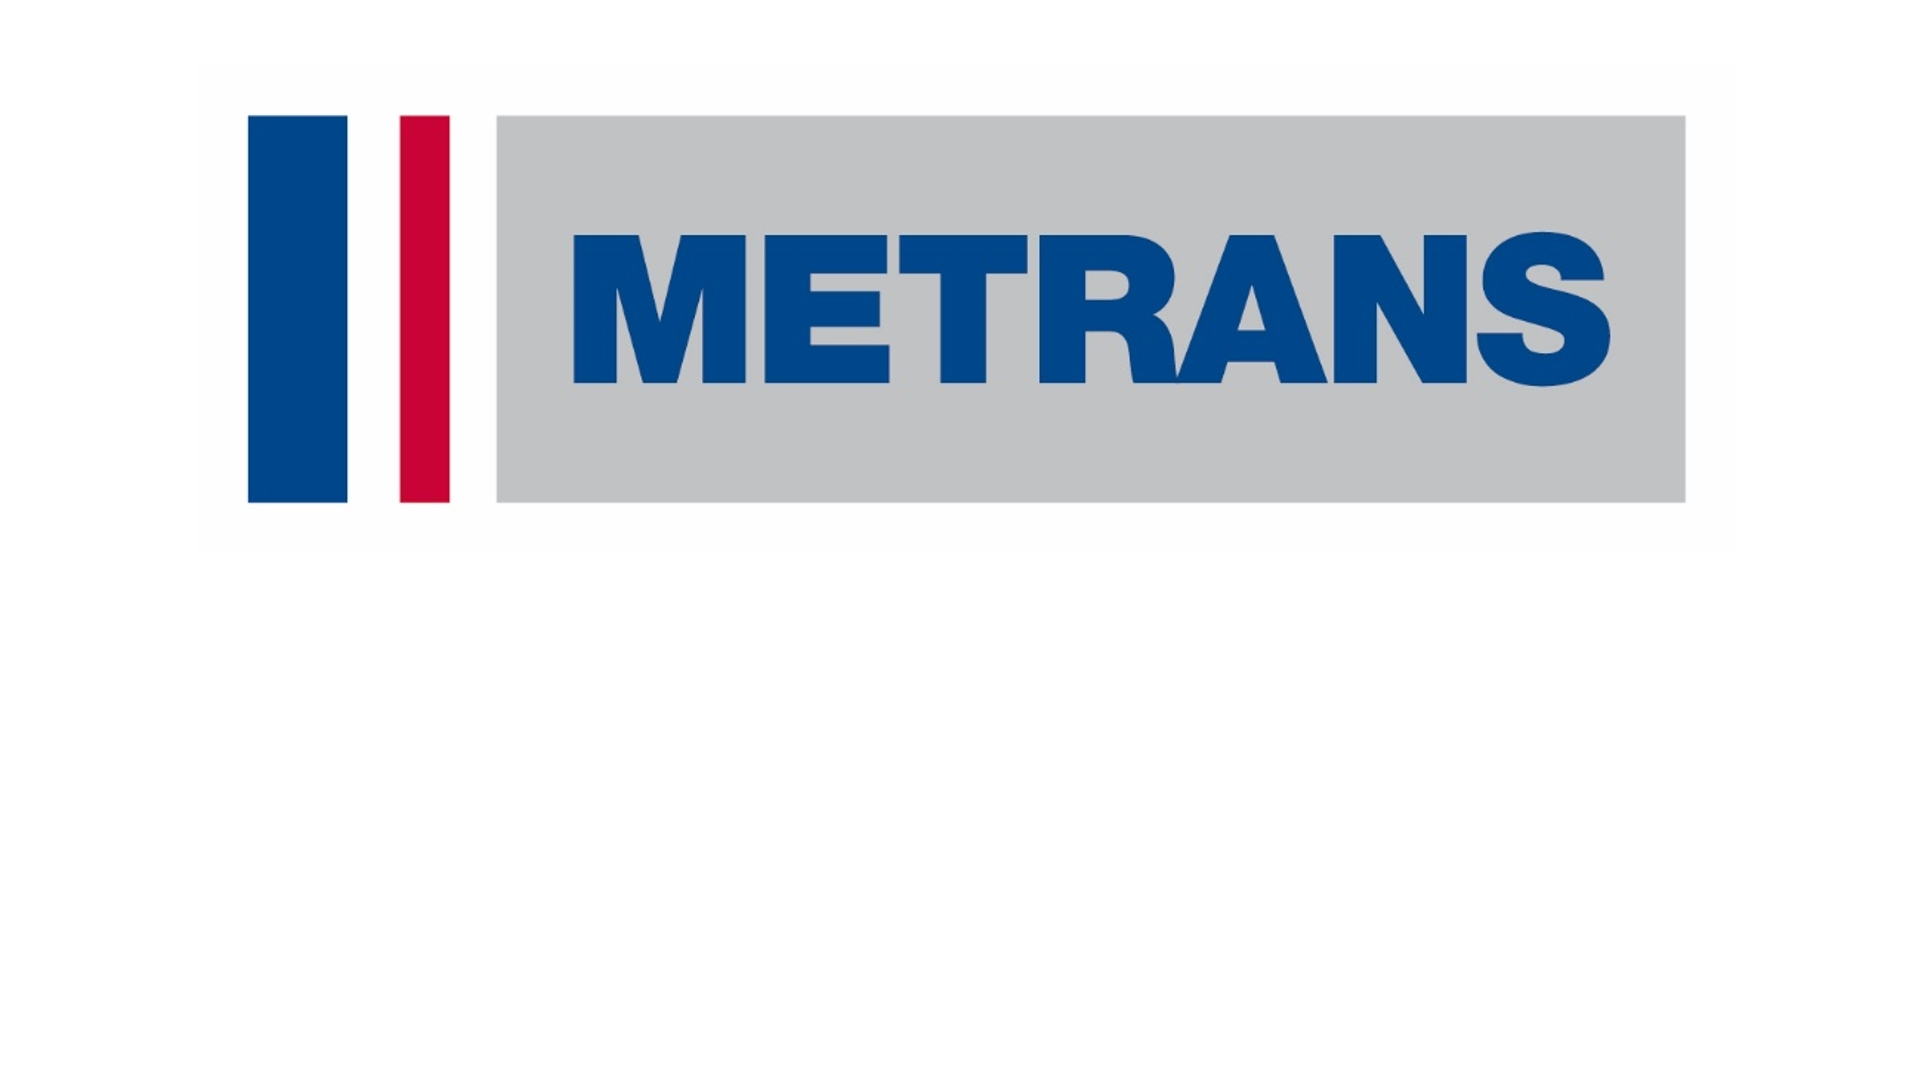 Metrans is building an intermodal container terminal in Zalaegerszeg - VIDEO REPORT